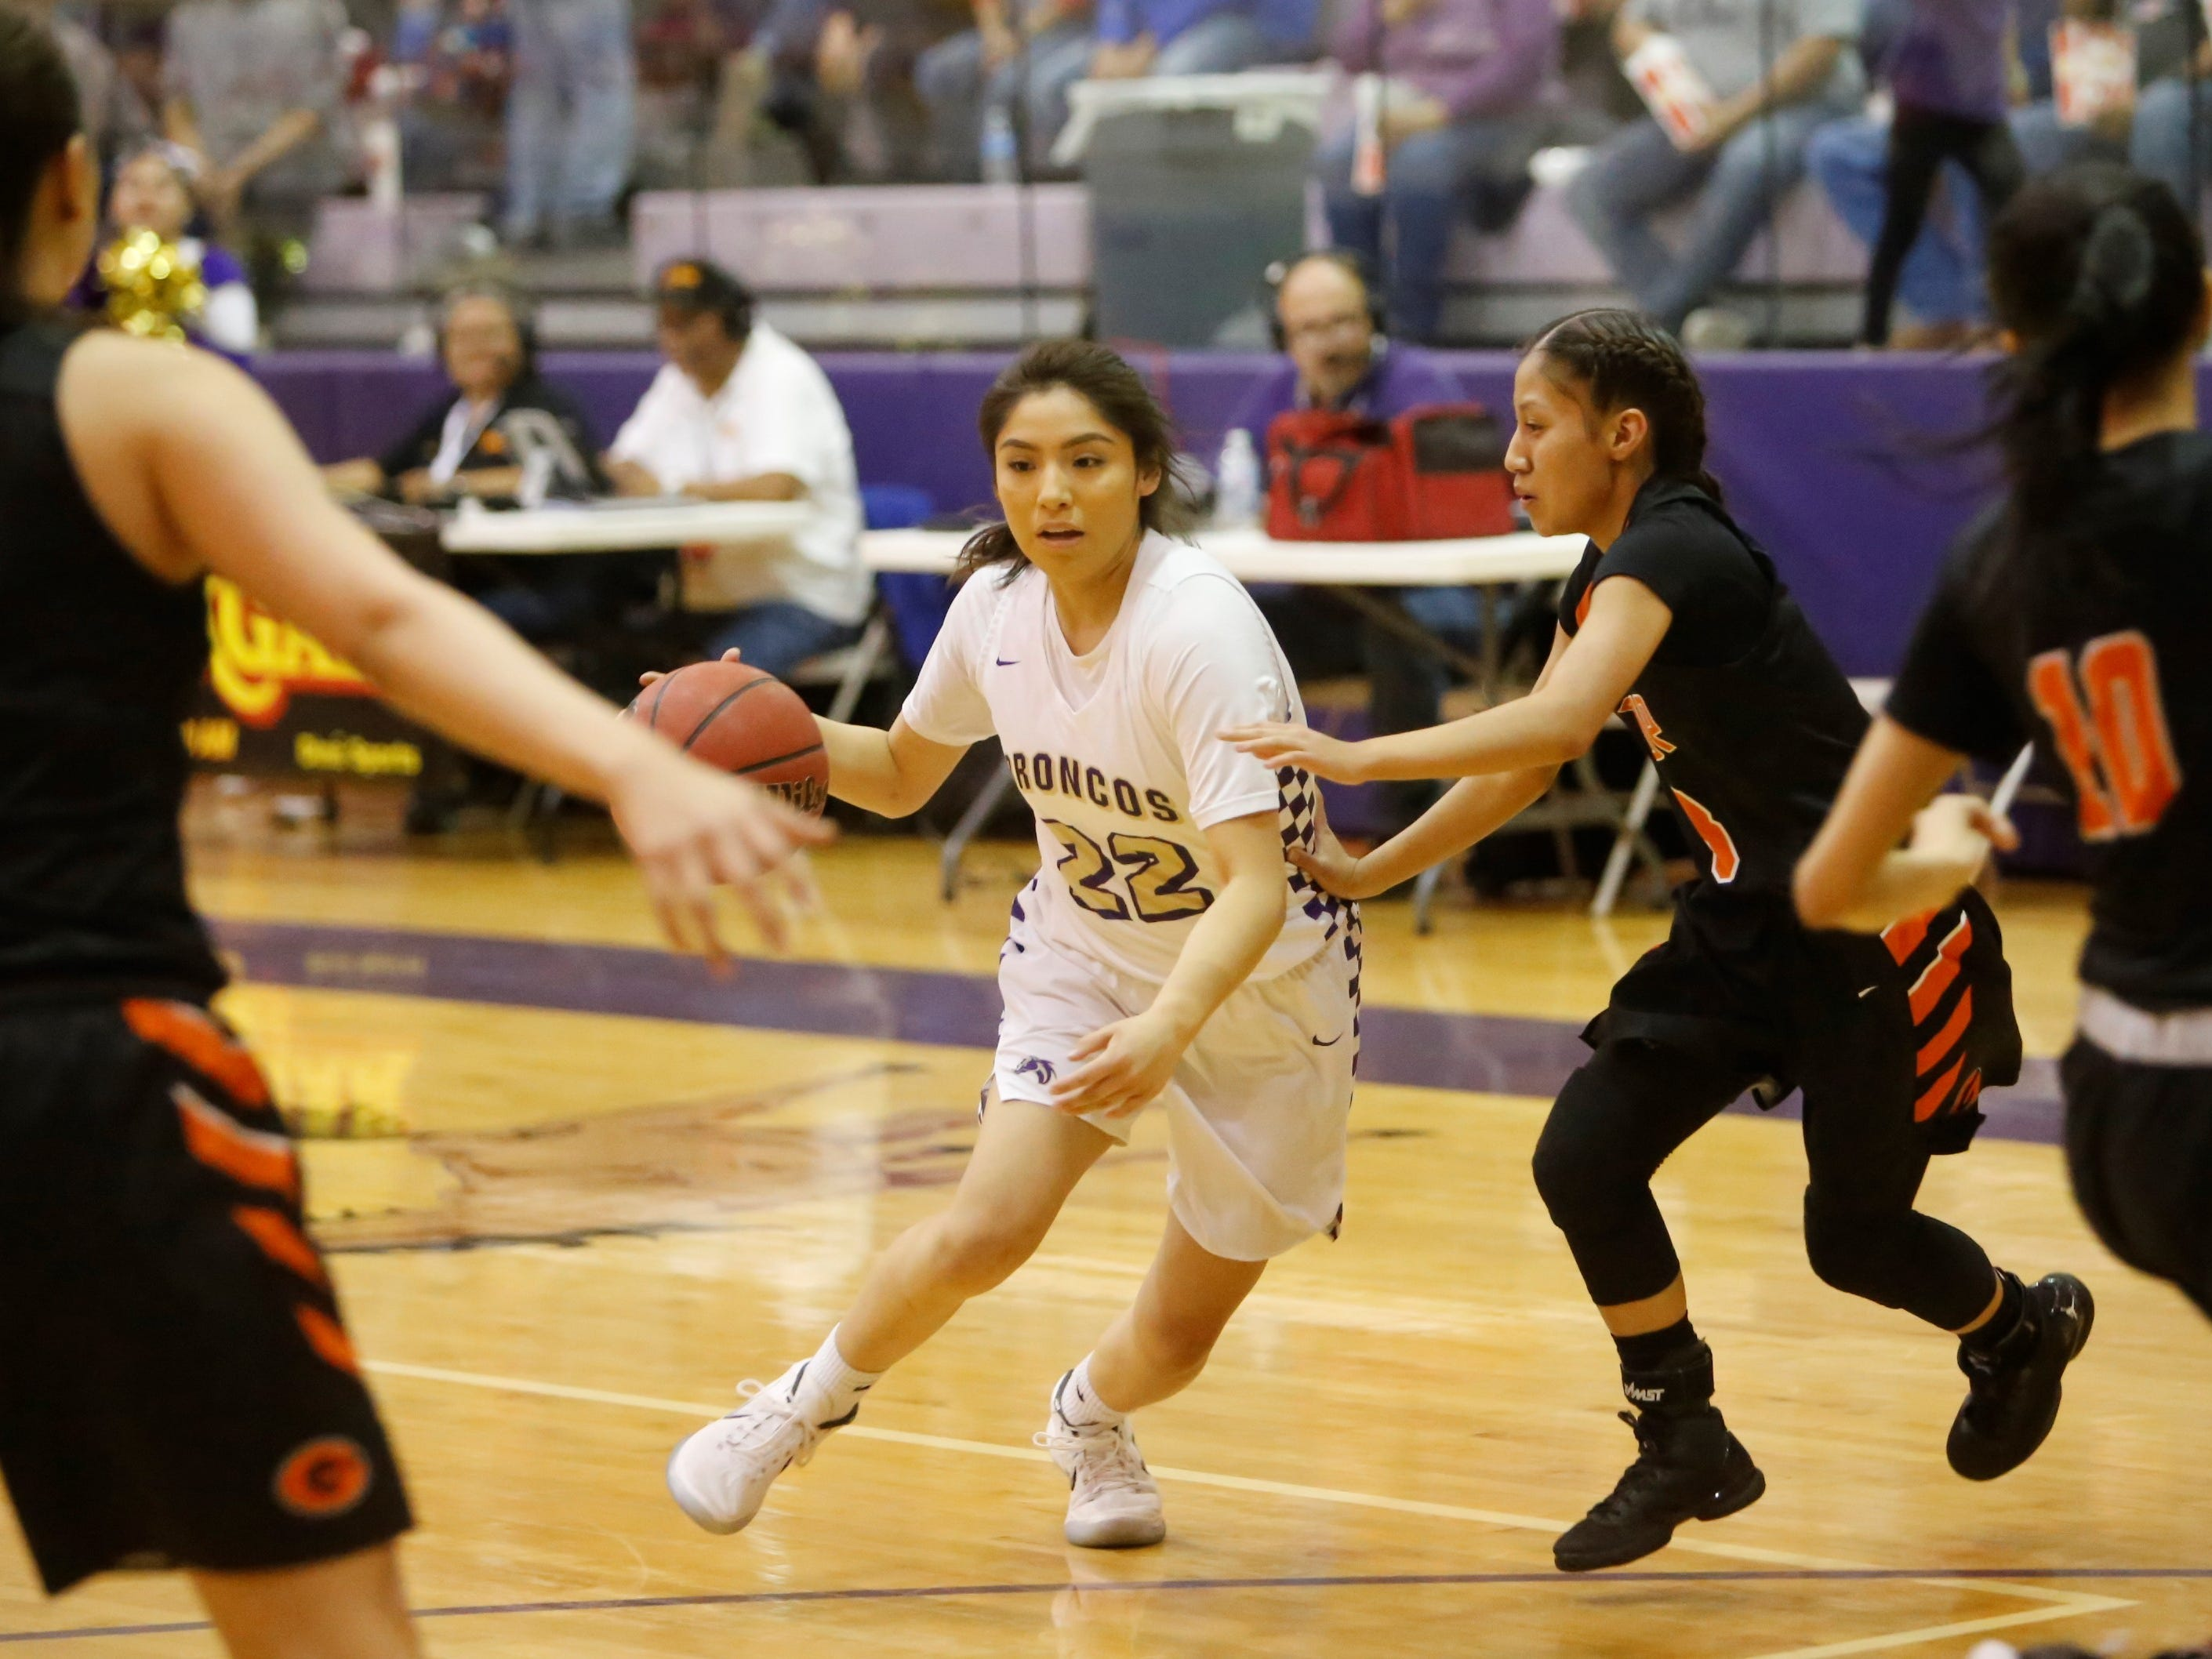 Kirtland Central's Tatelyn Manheimer drives toward the basket against Gallup during Friday's District 1-4A tournament championship game at Bronco Arena.